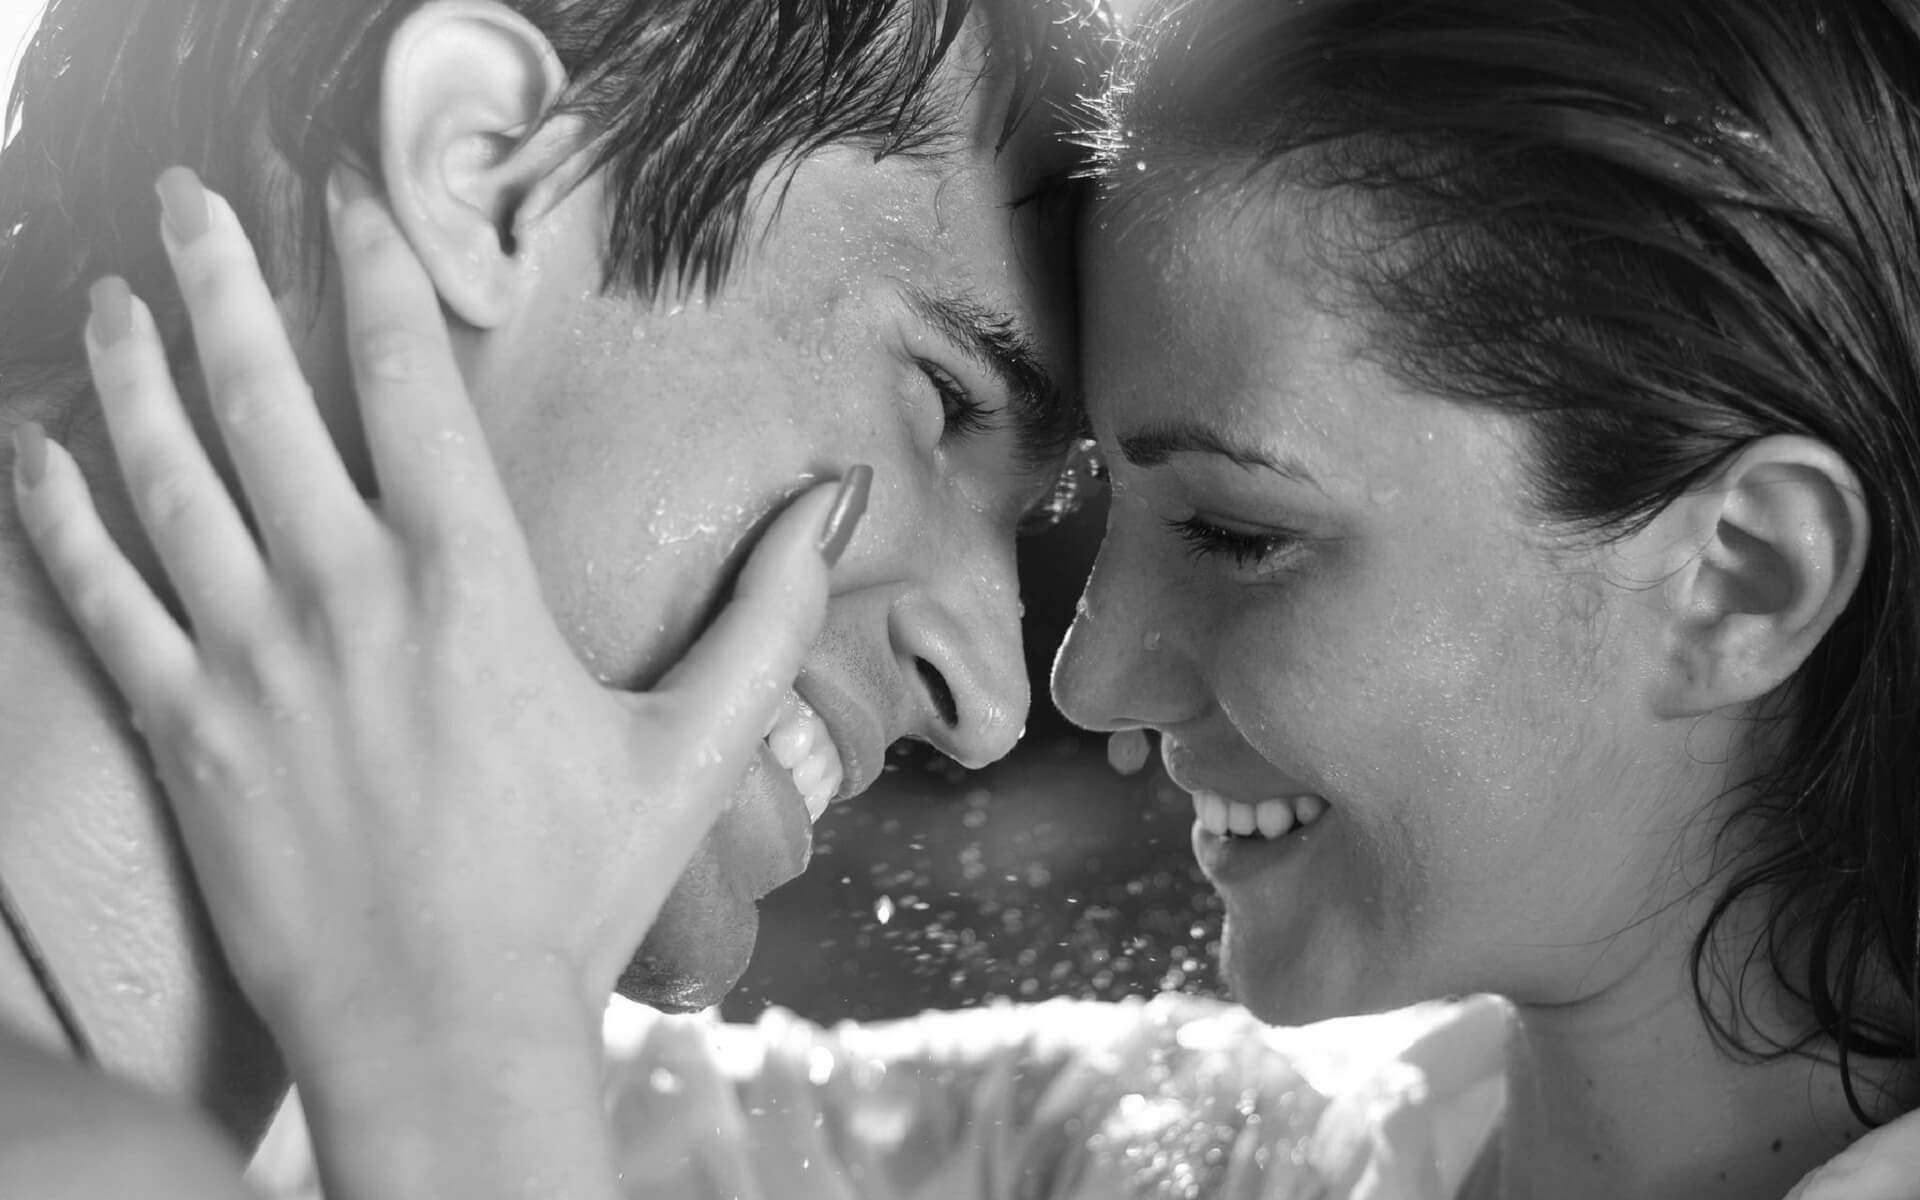 happy couples black and white picture in rain